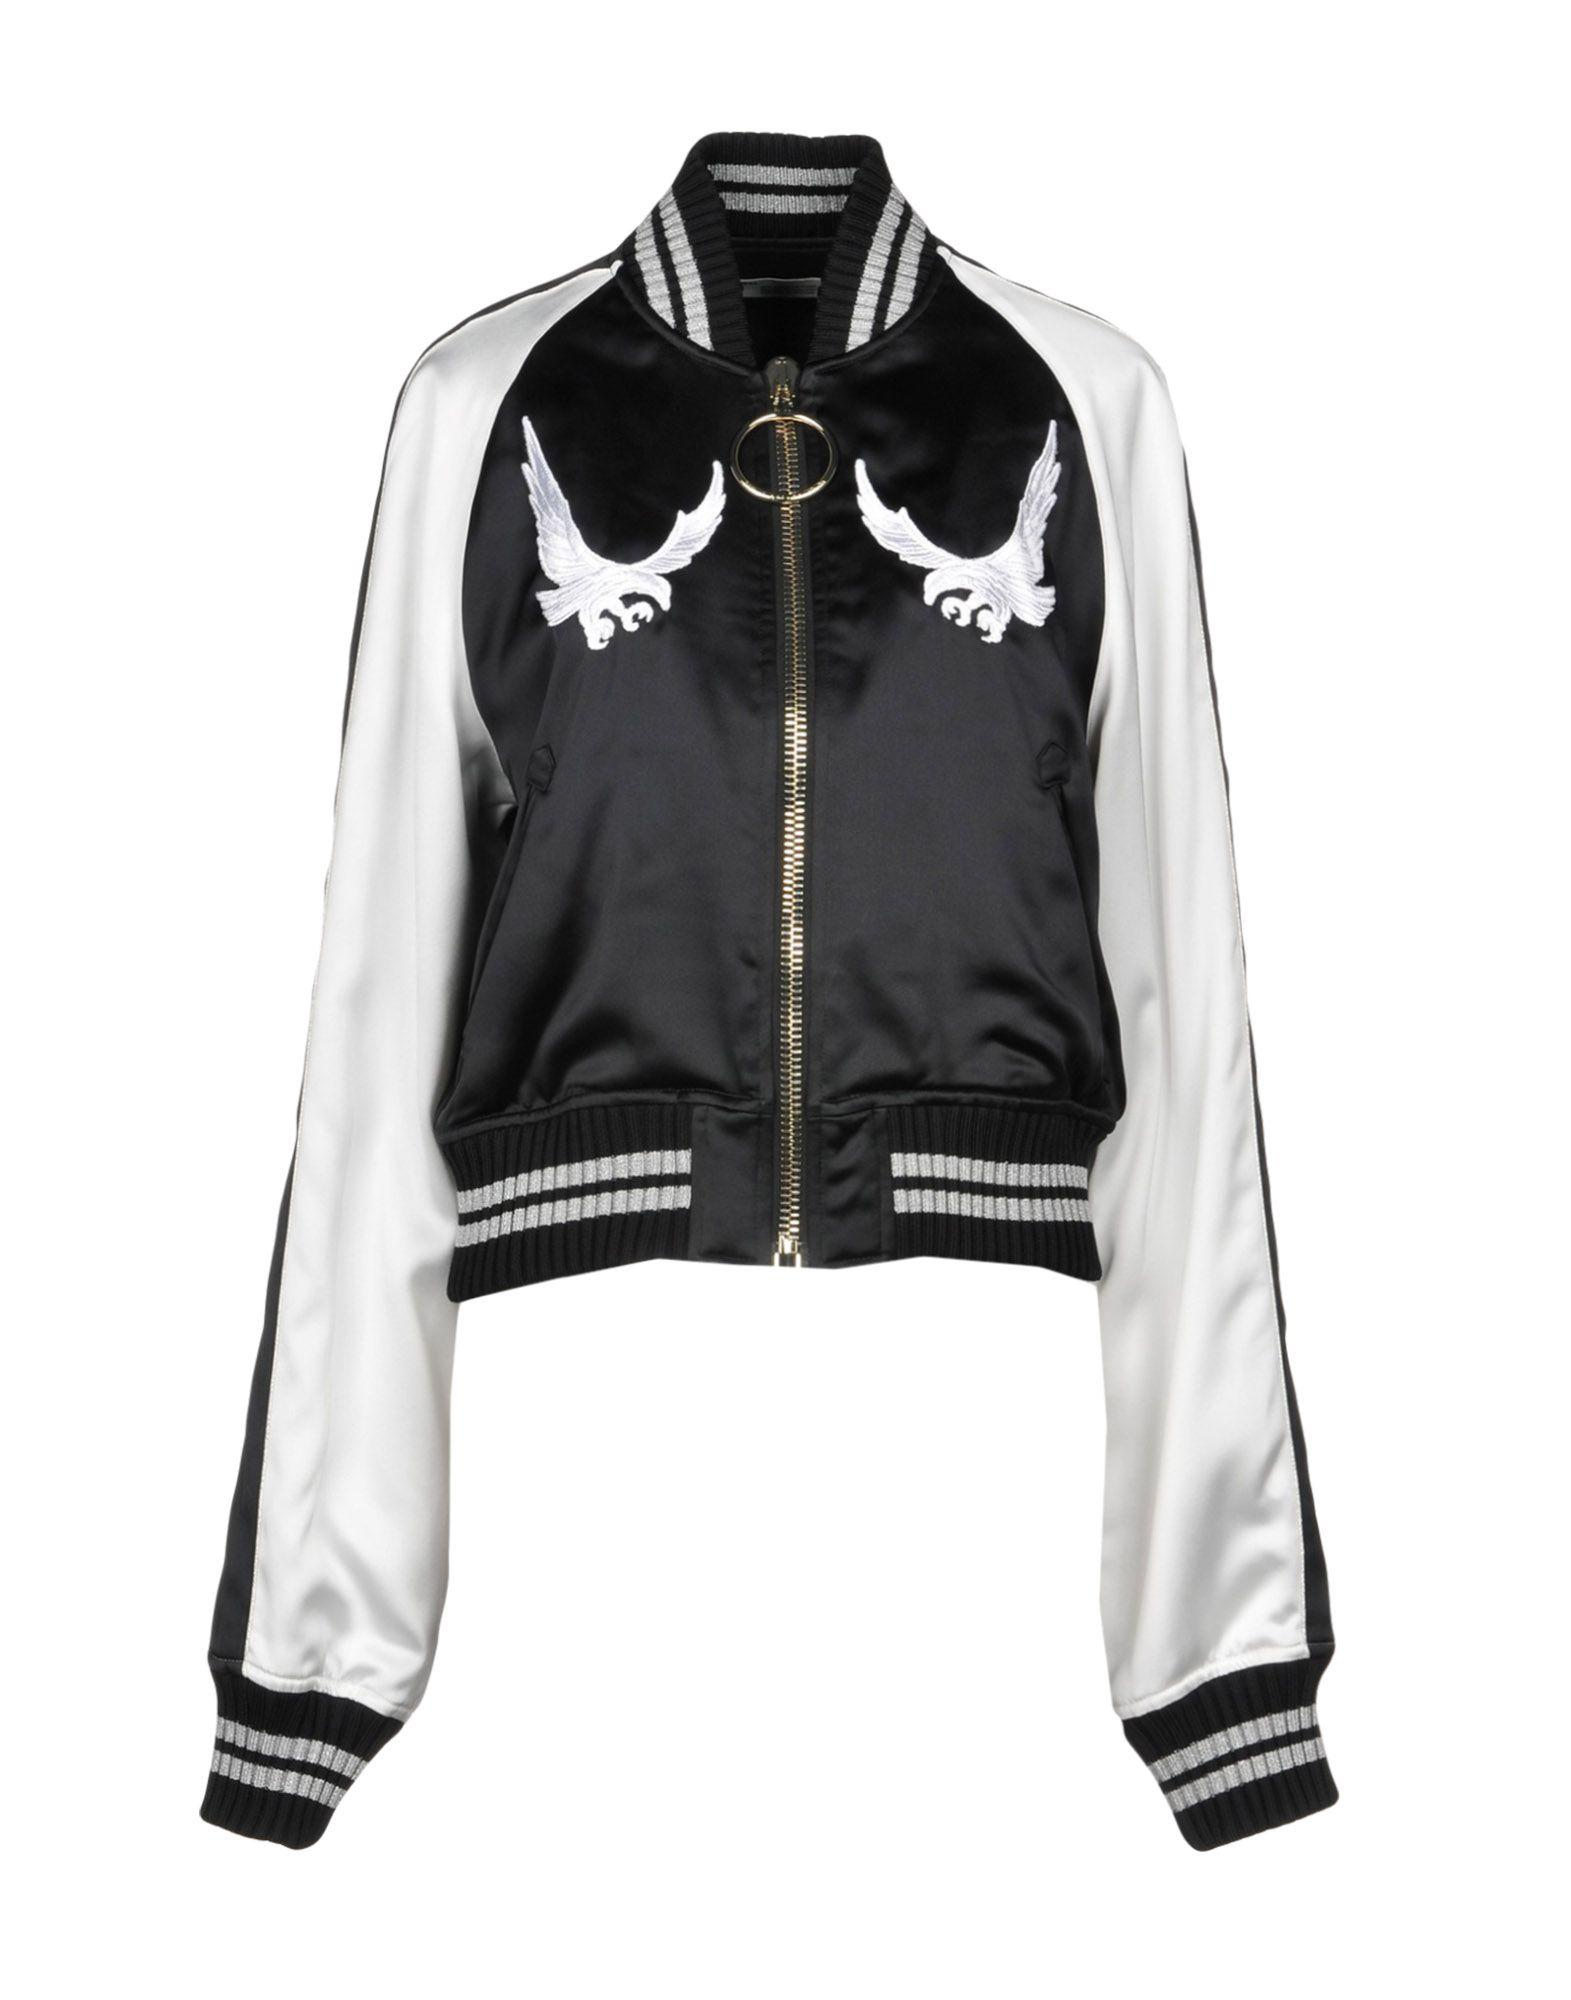 Off-white ™ Jackets In Black